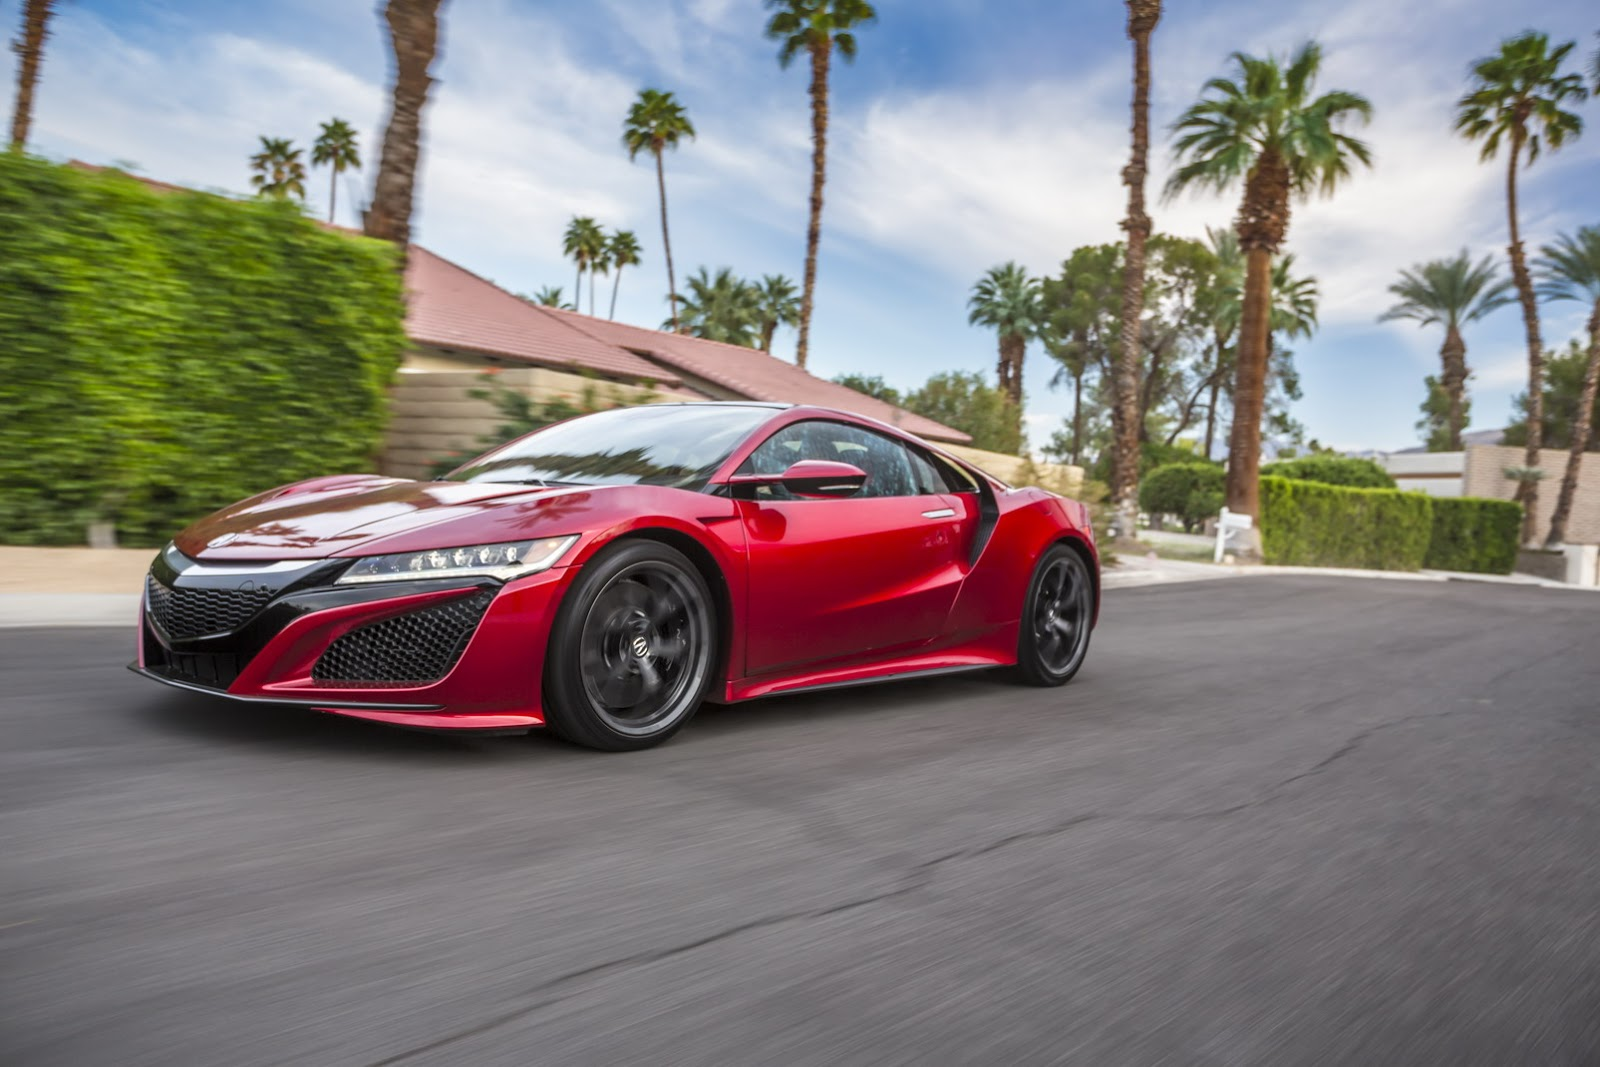 2017 acura nsx expected to receive type r and roadster versions rh carscoops com Wire Harness Drawing 95 Honda Civic Wiring Harness